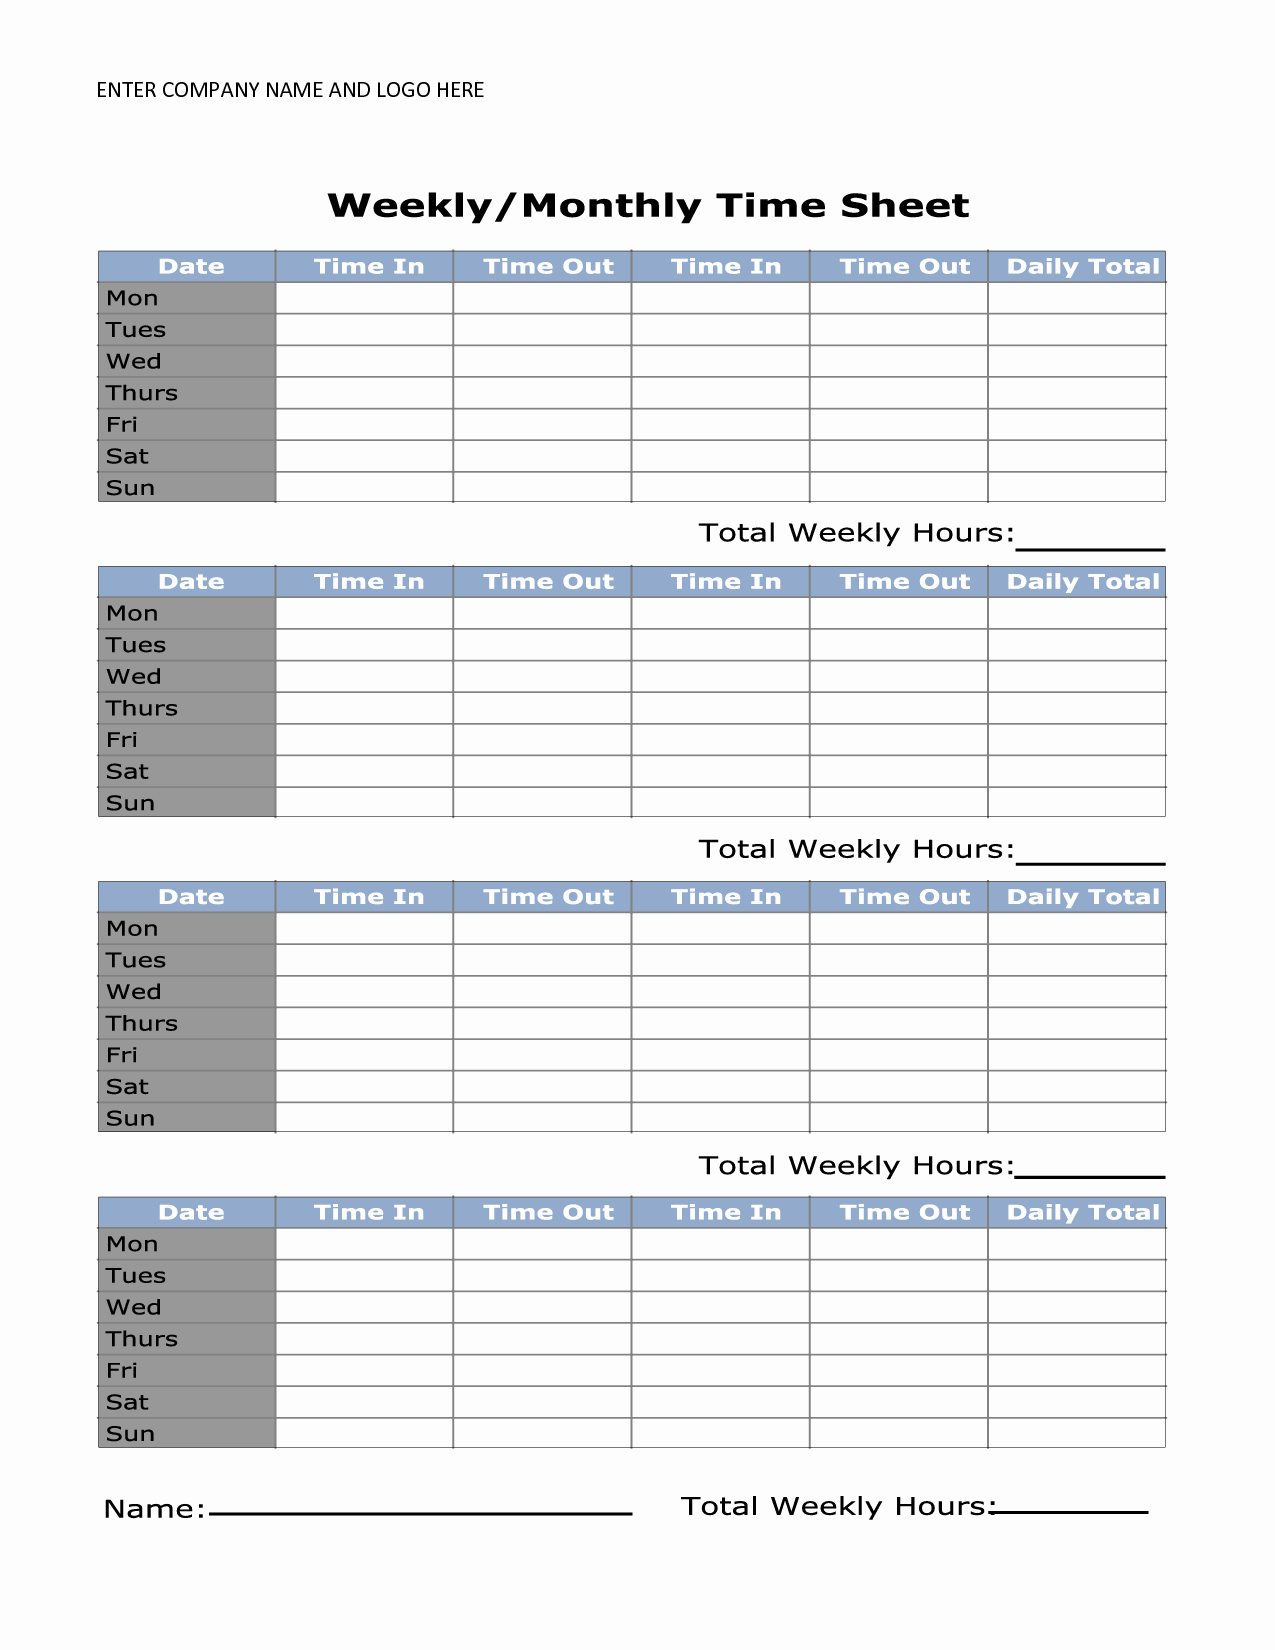 Daily Time Sheets Free Printable Unique Printable Weekly Timesheet Template Uma Printable